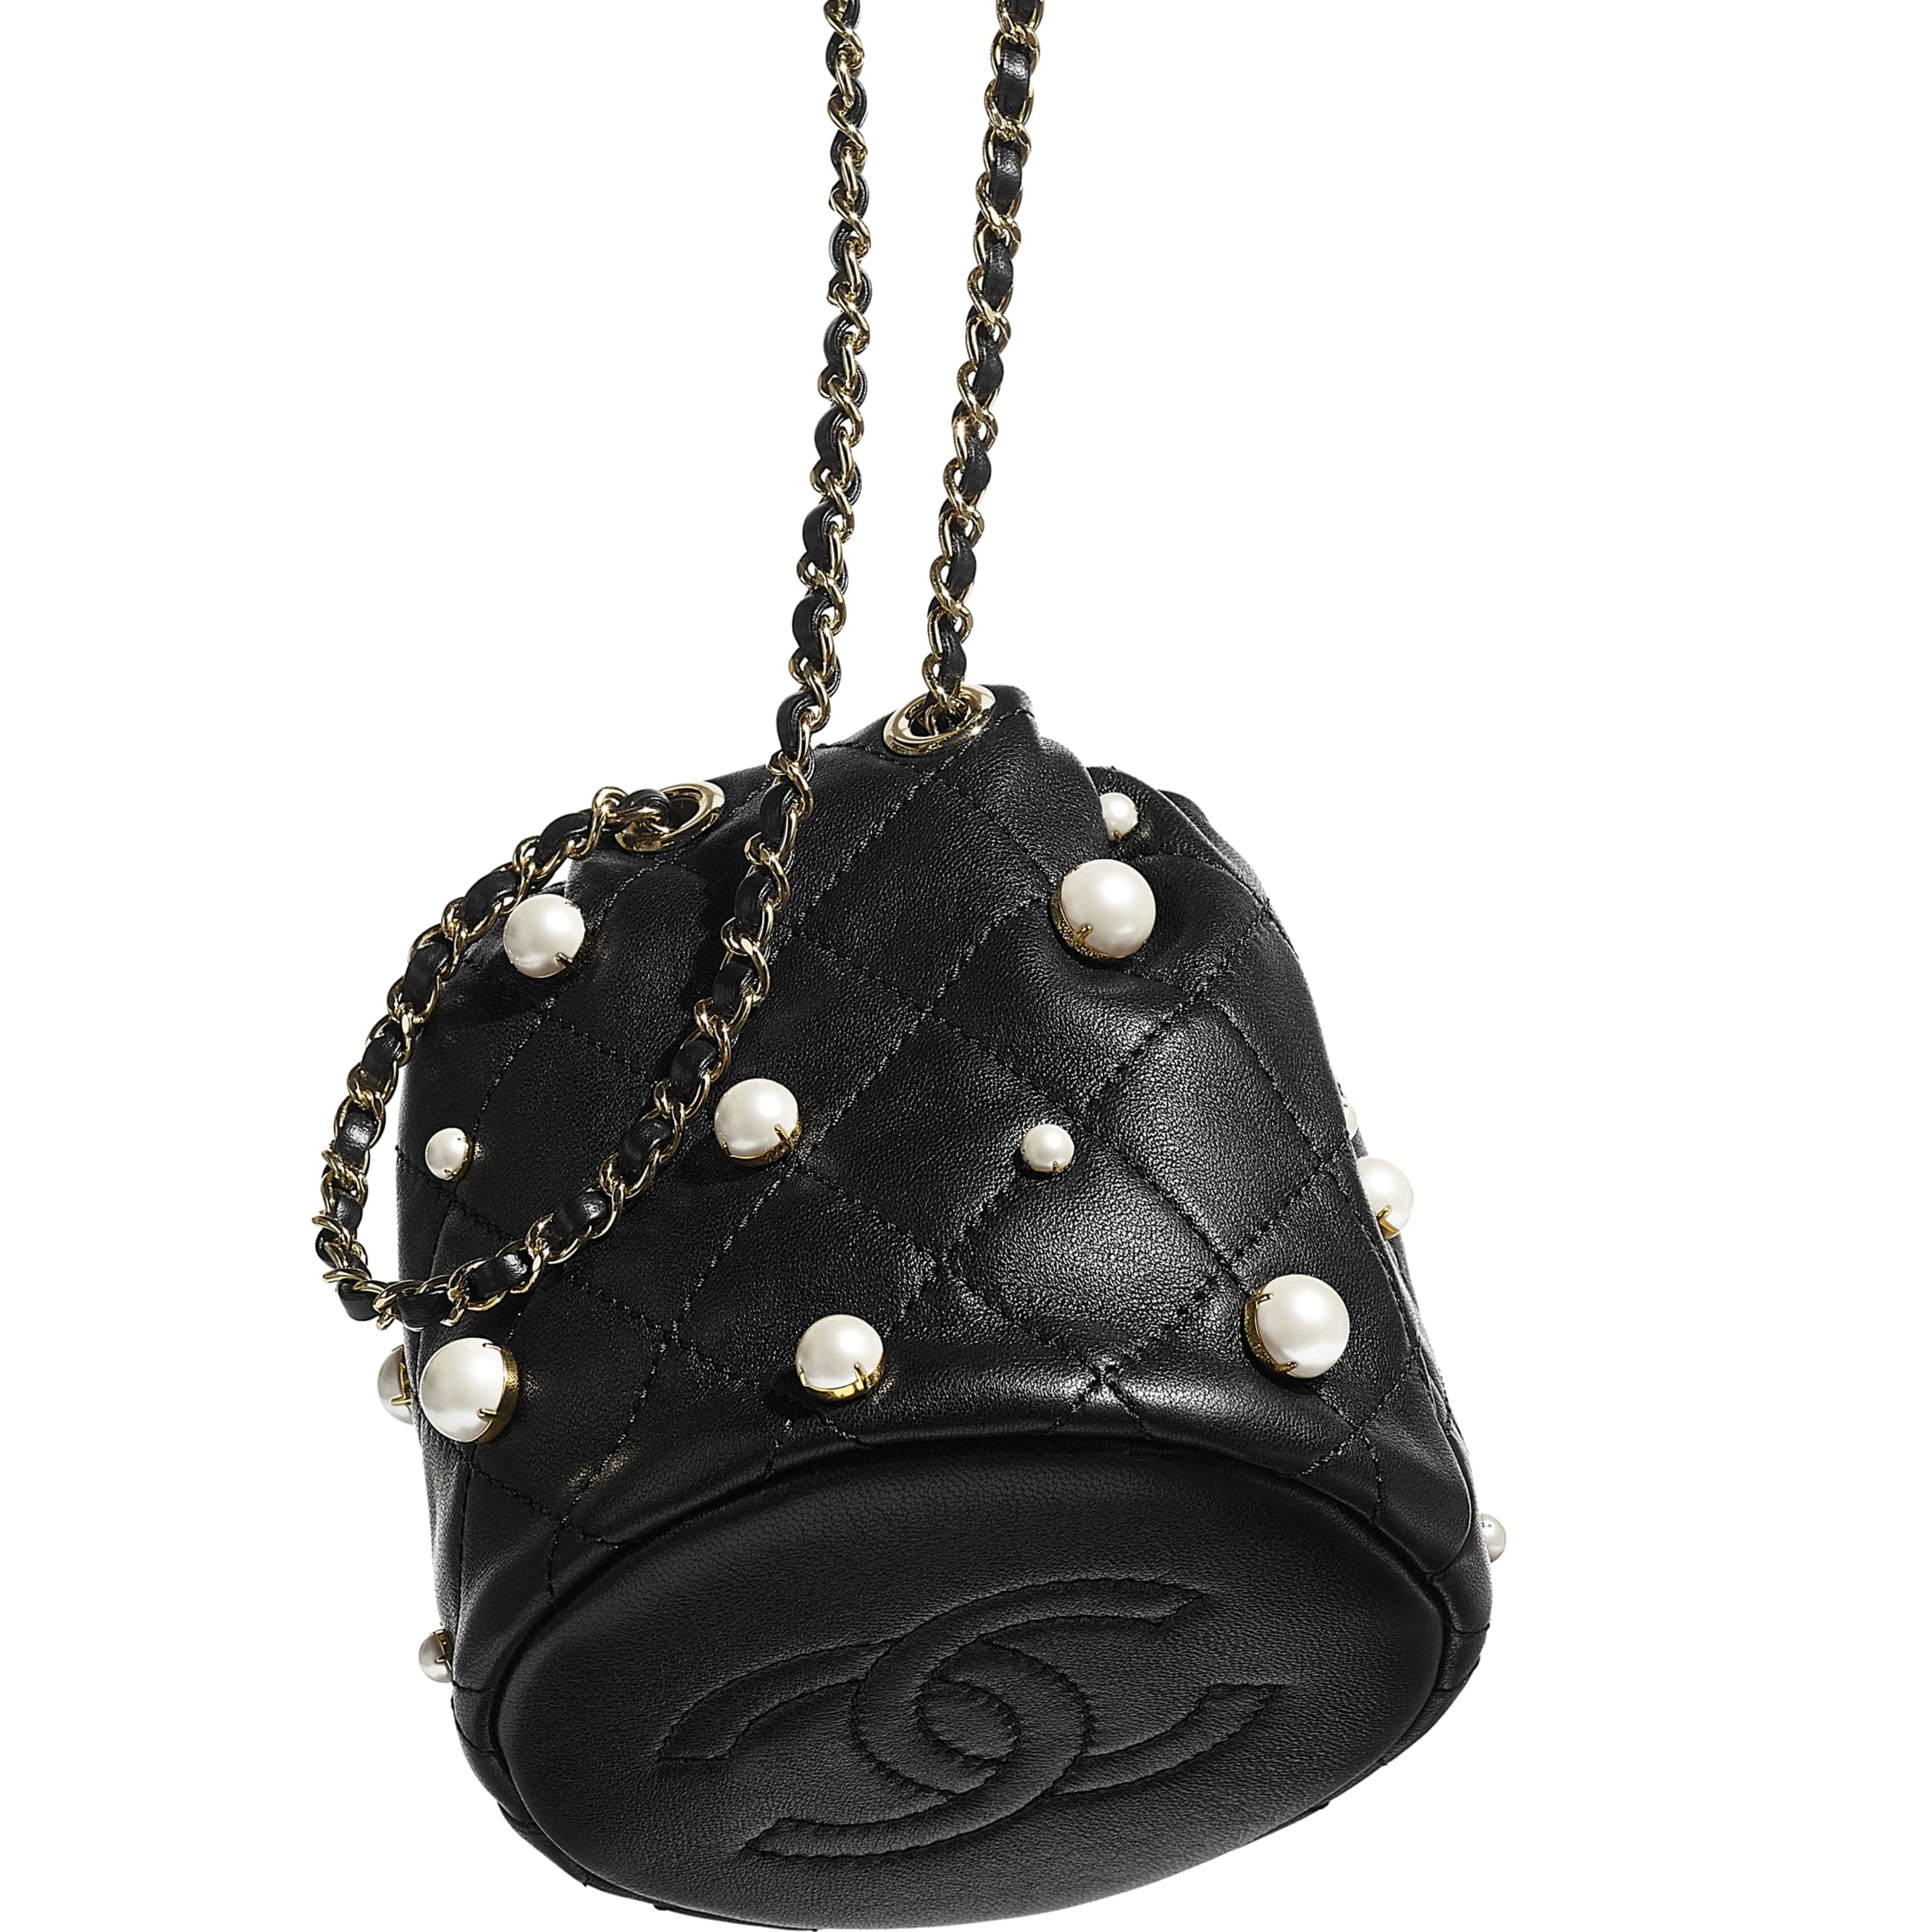 Mini Drawstring Bag - Black - Lambskin, Imitation Pearls & Gold Metal - CHANEL - Other view - see standard sized version